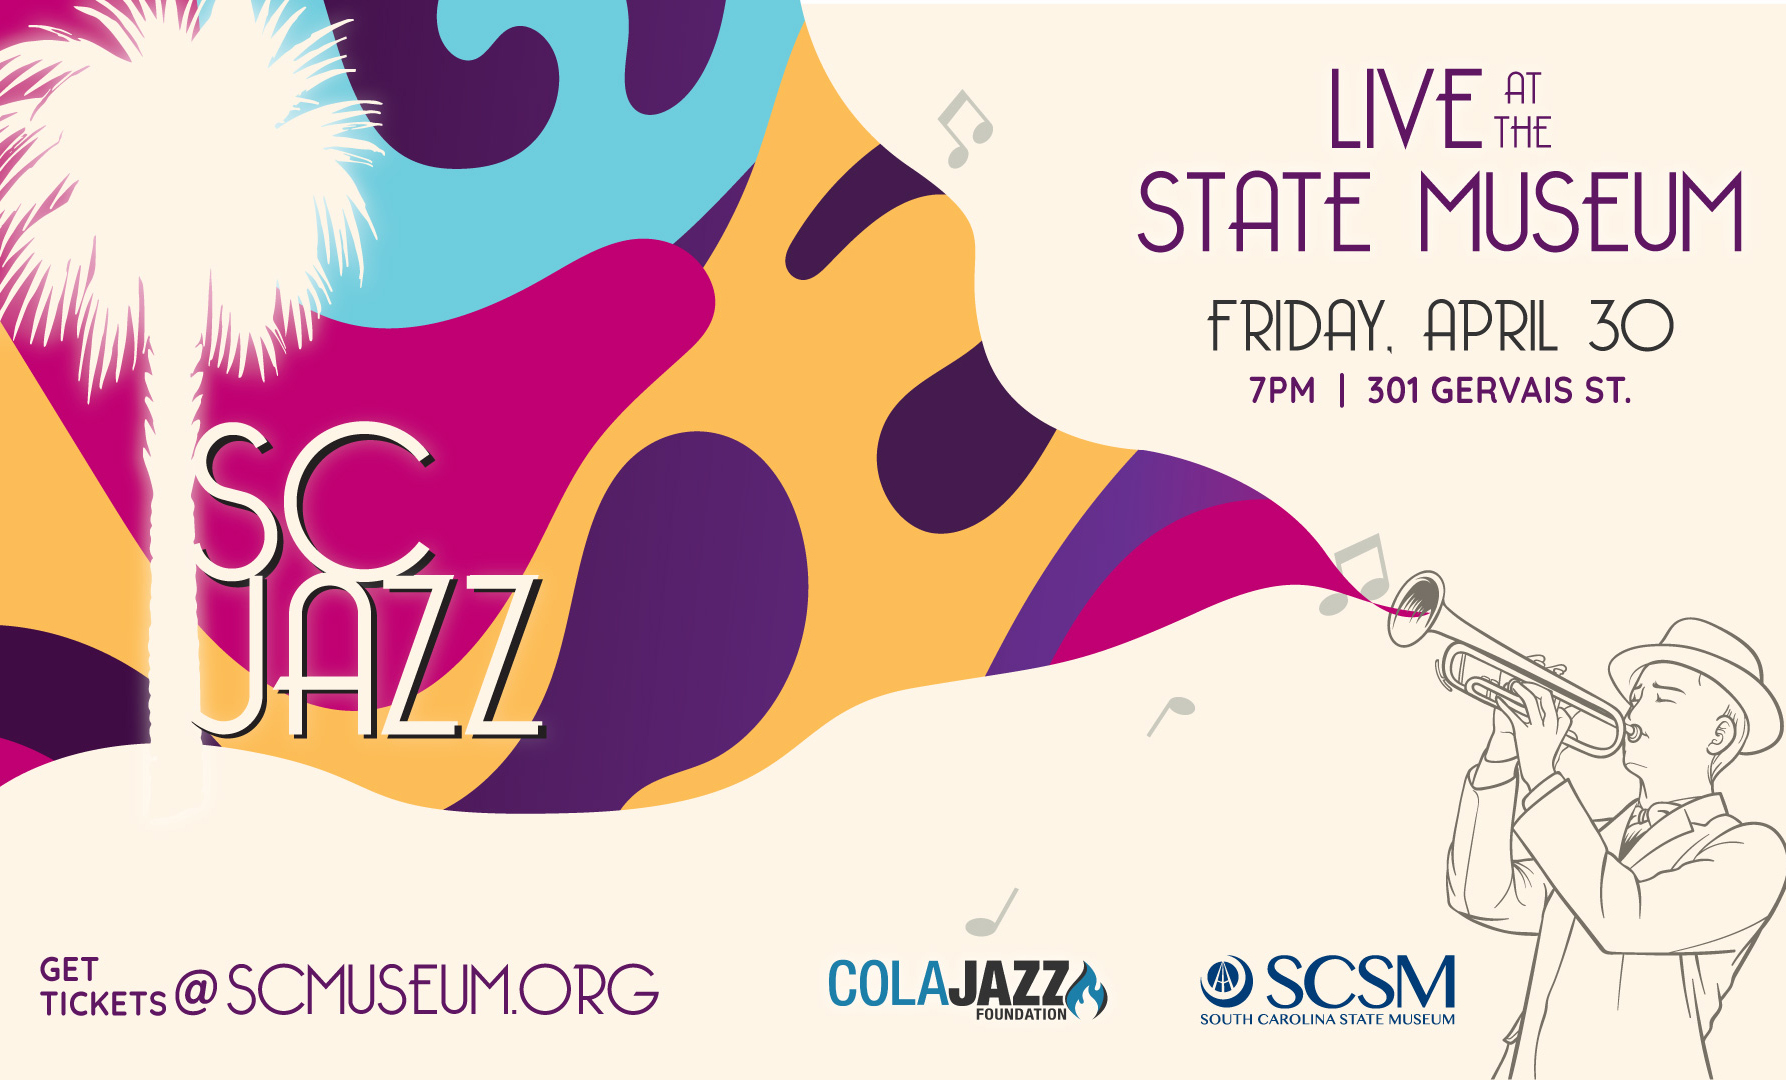 SC Jazz - Live at the State Museum